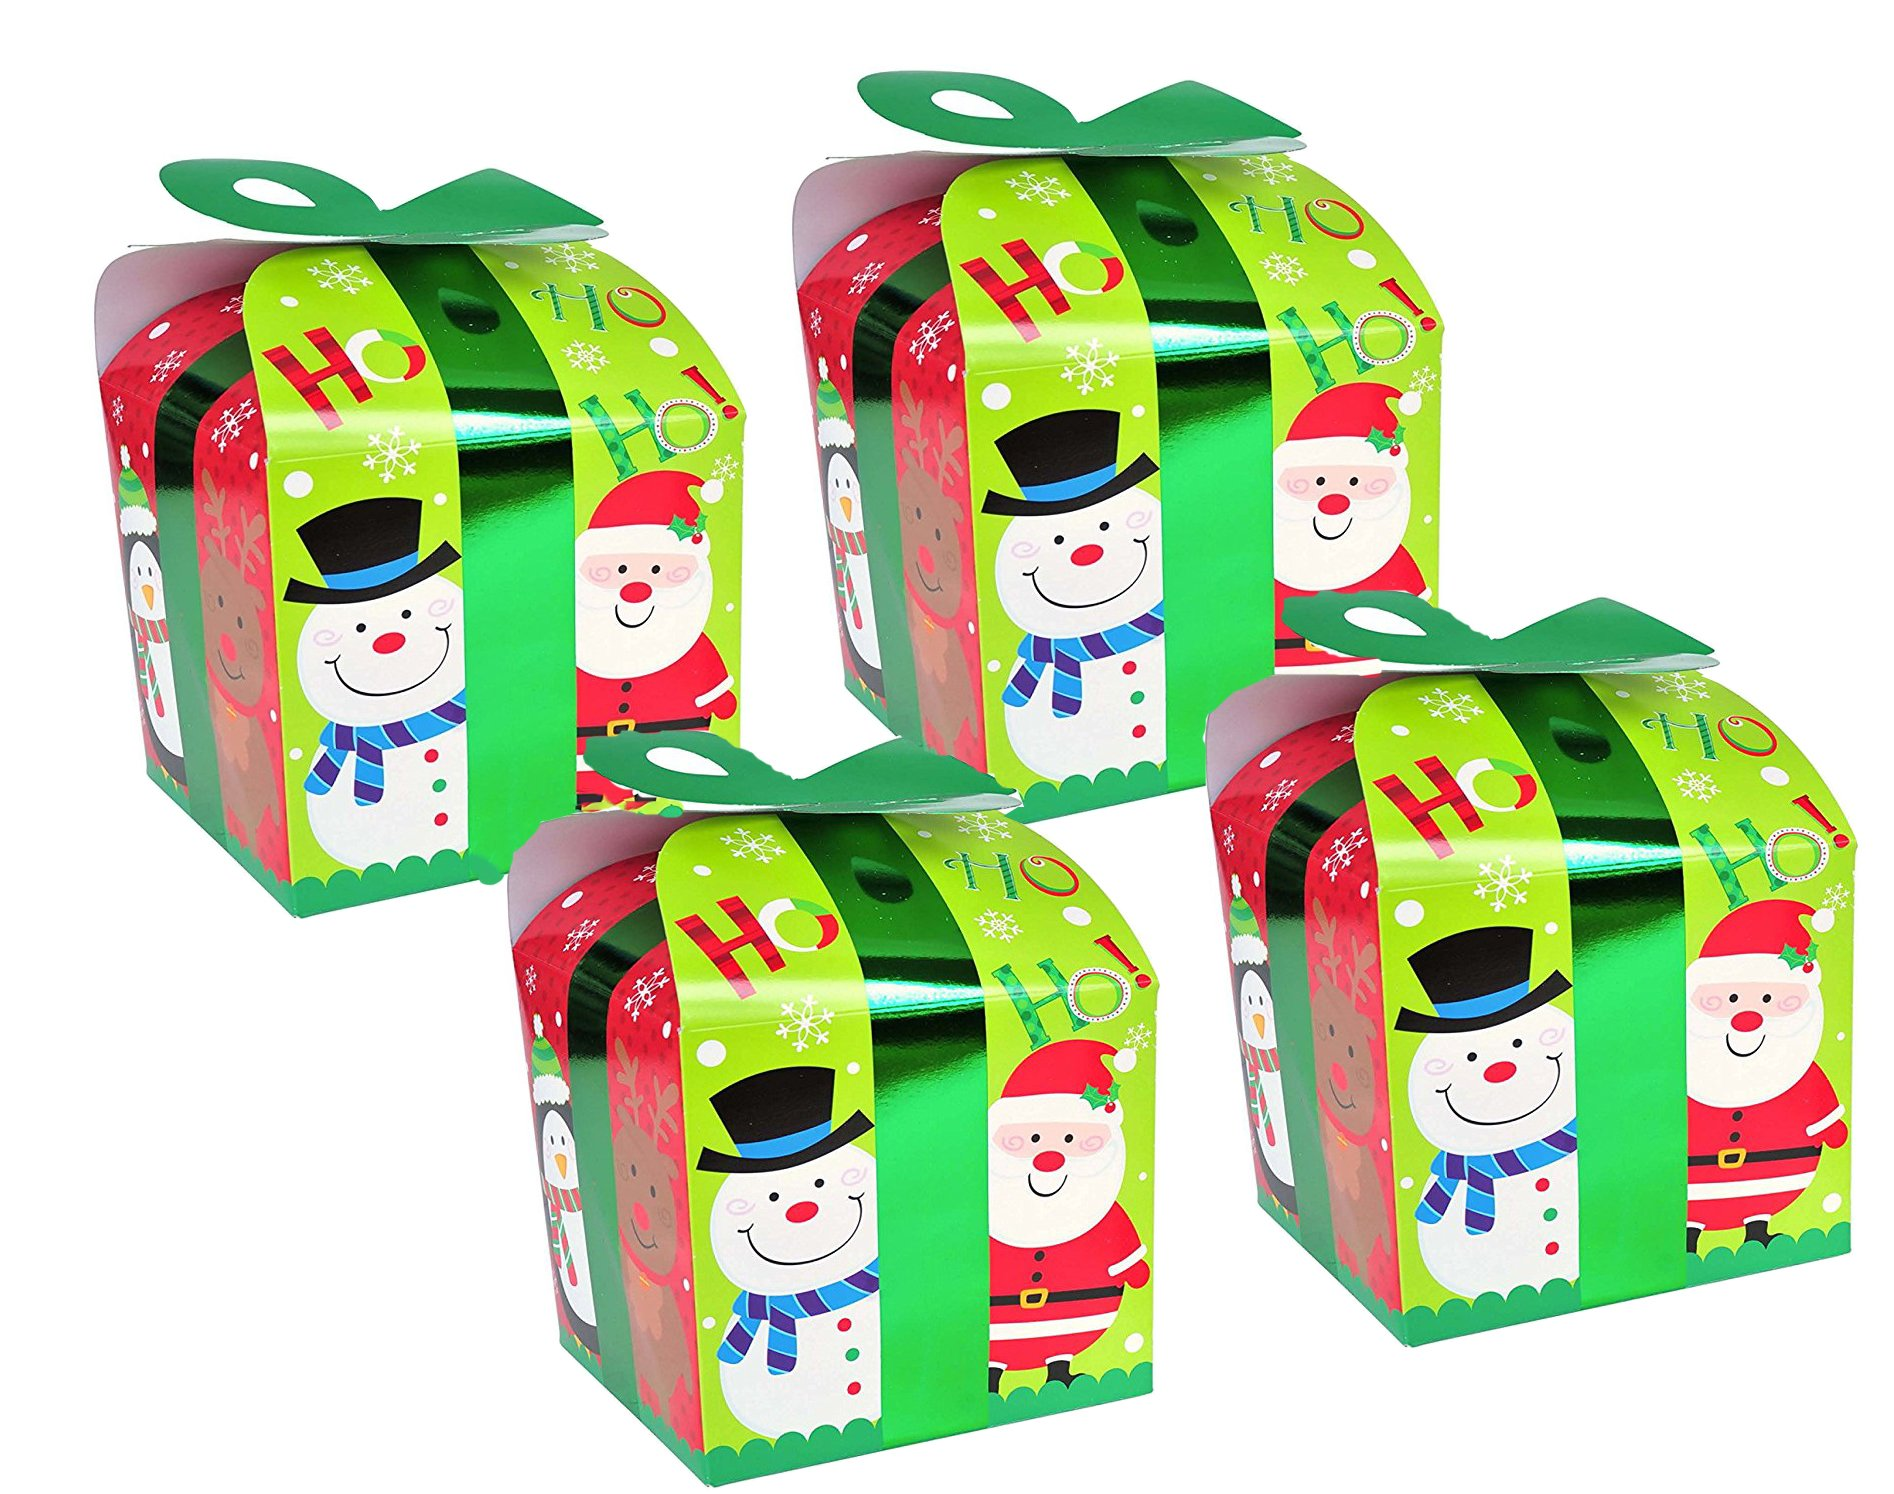 Amazon.com: 8 Christmas Gift Boxes/Gable - Best for Small Gifts ...